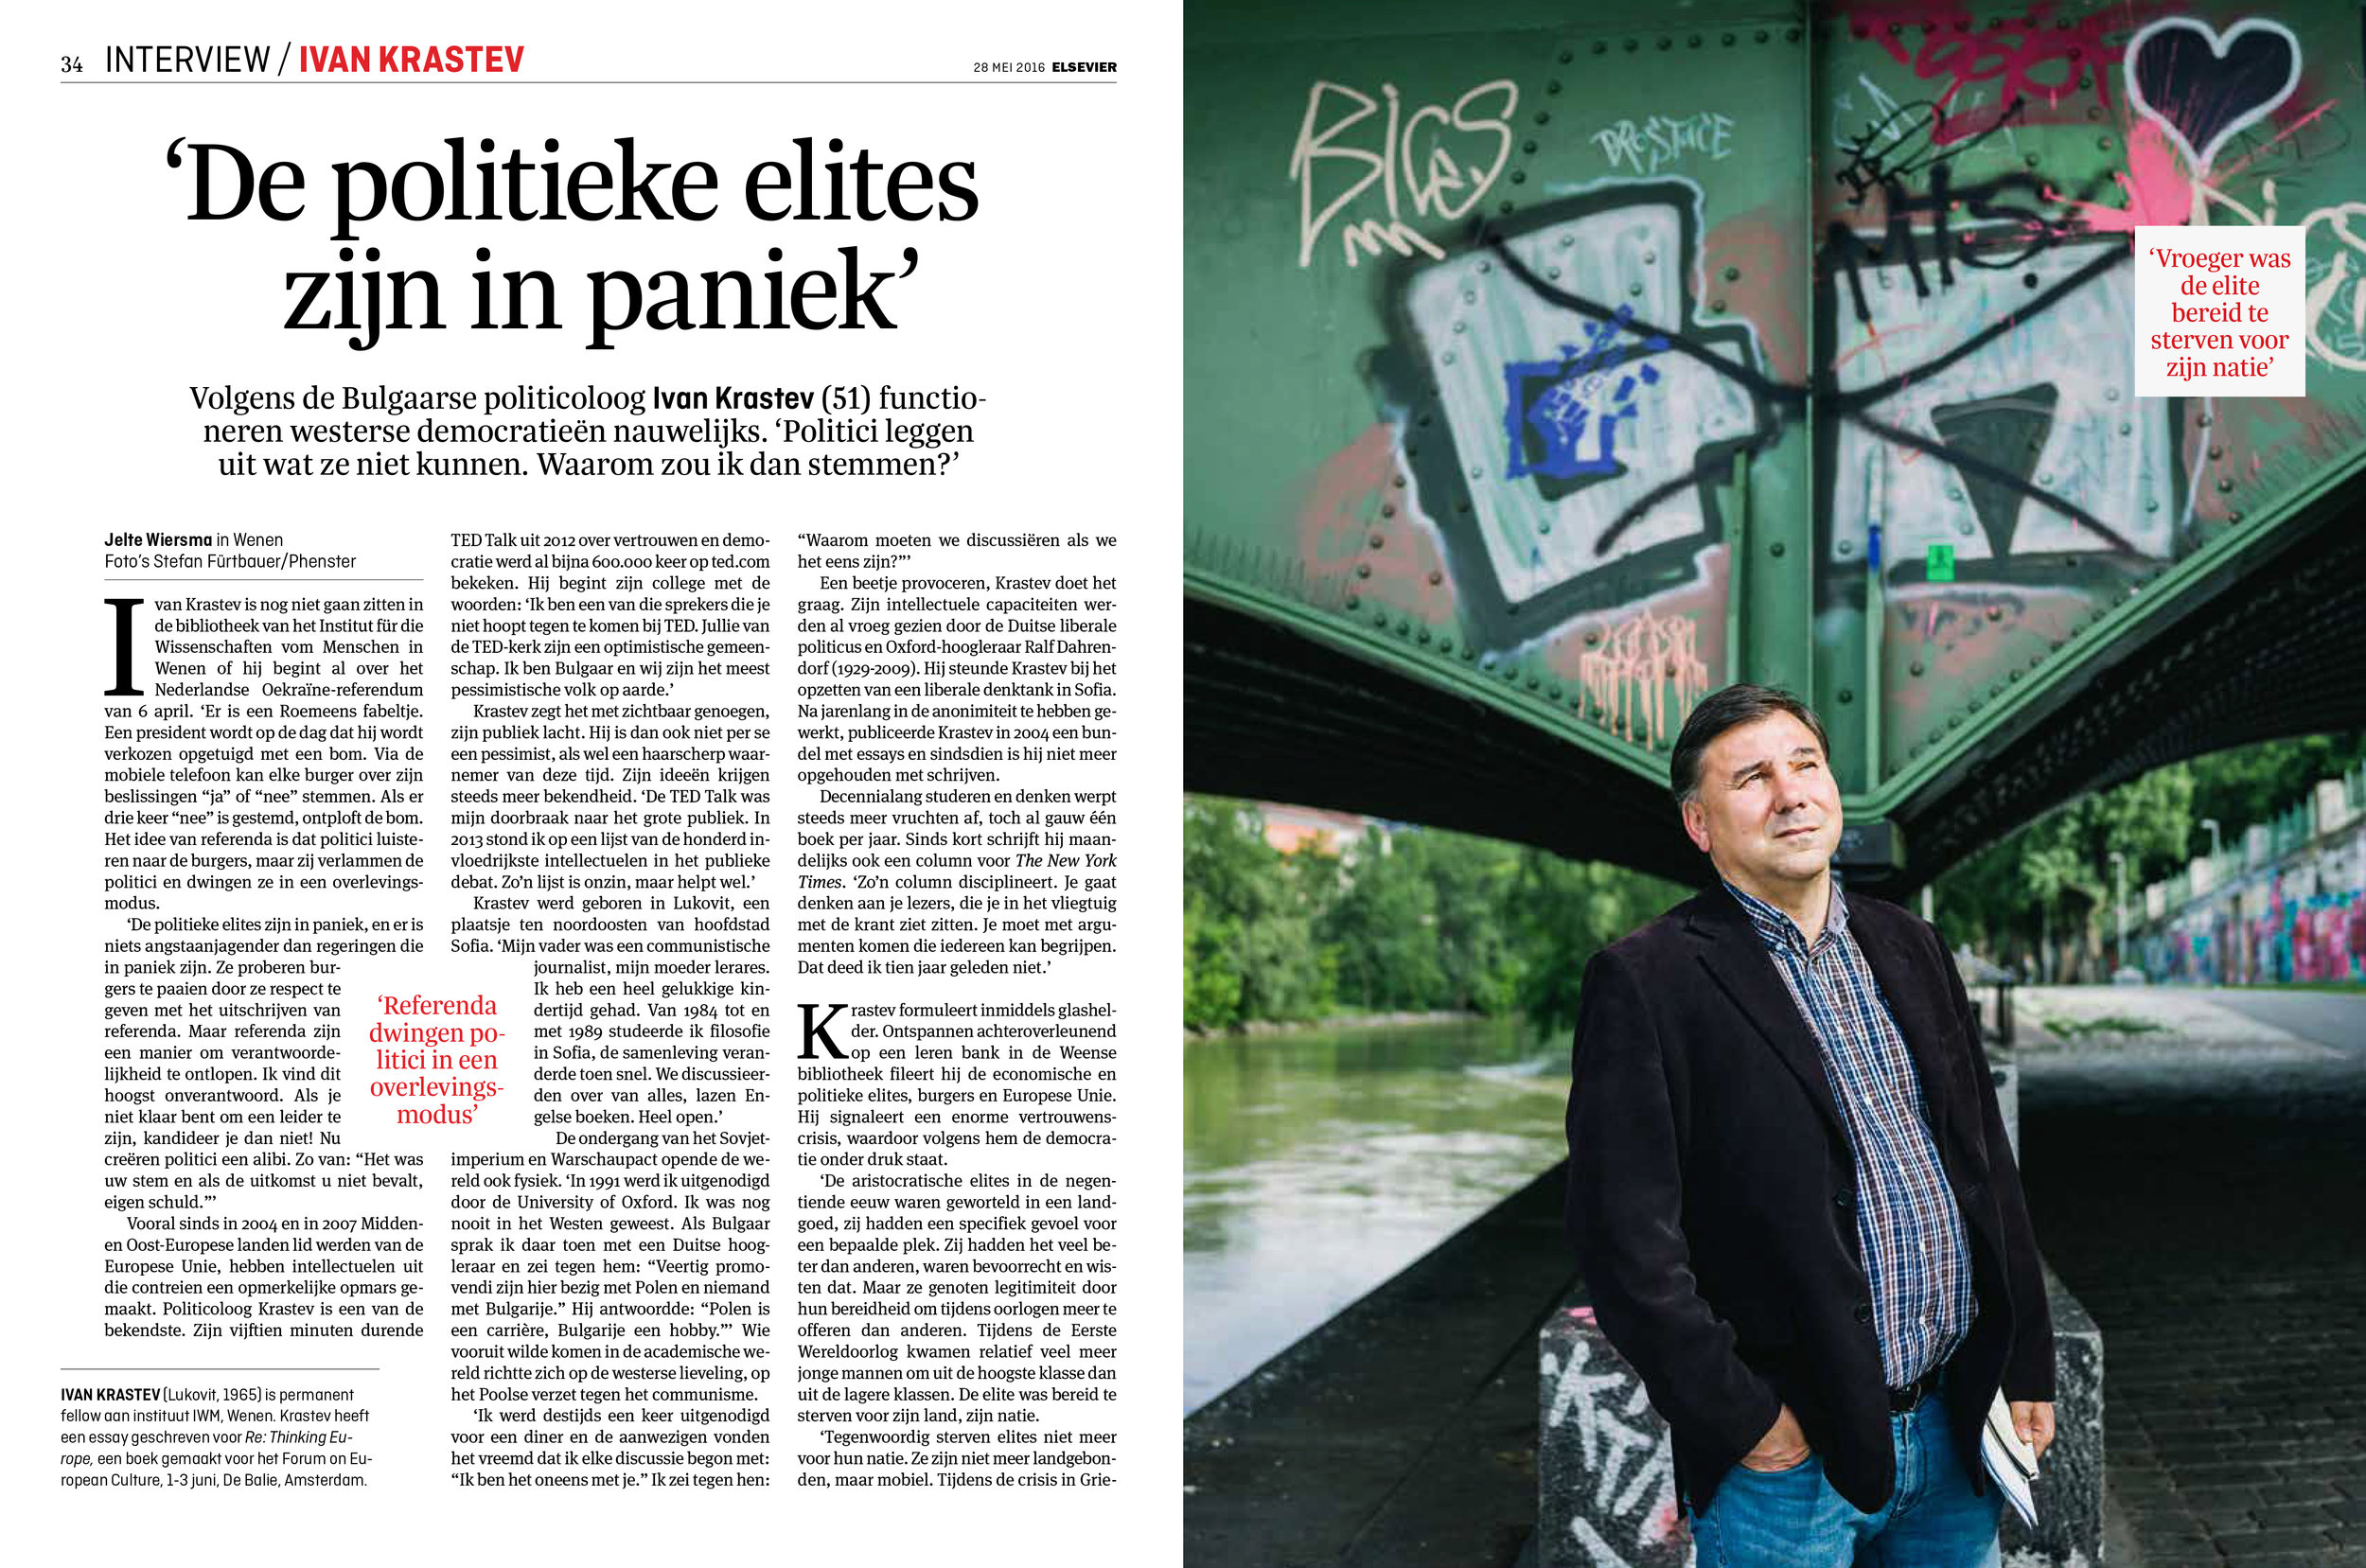 Ivan Krastev for Elsevier